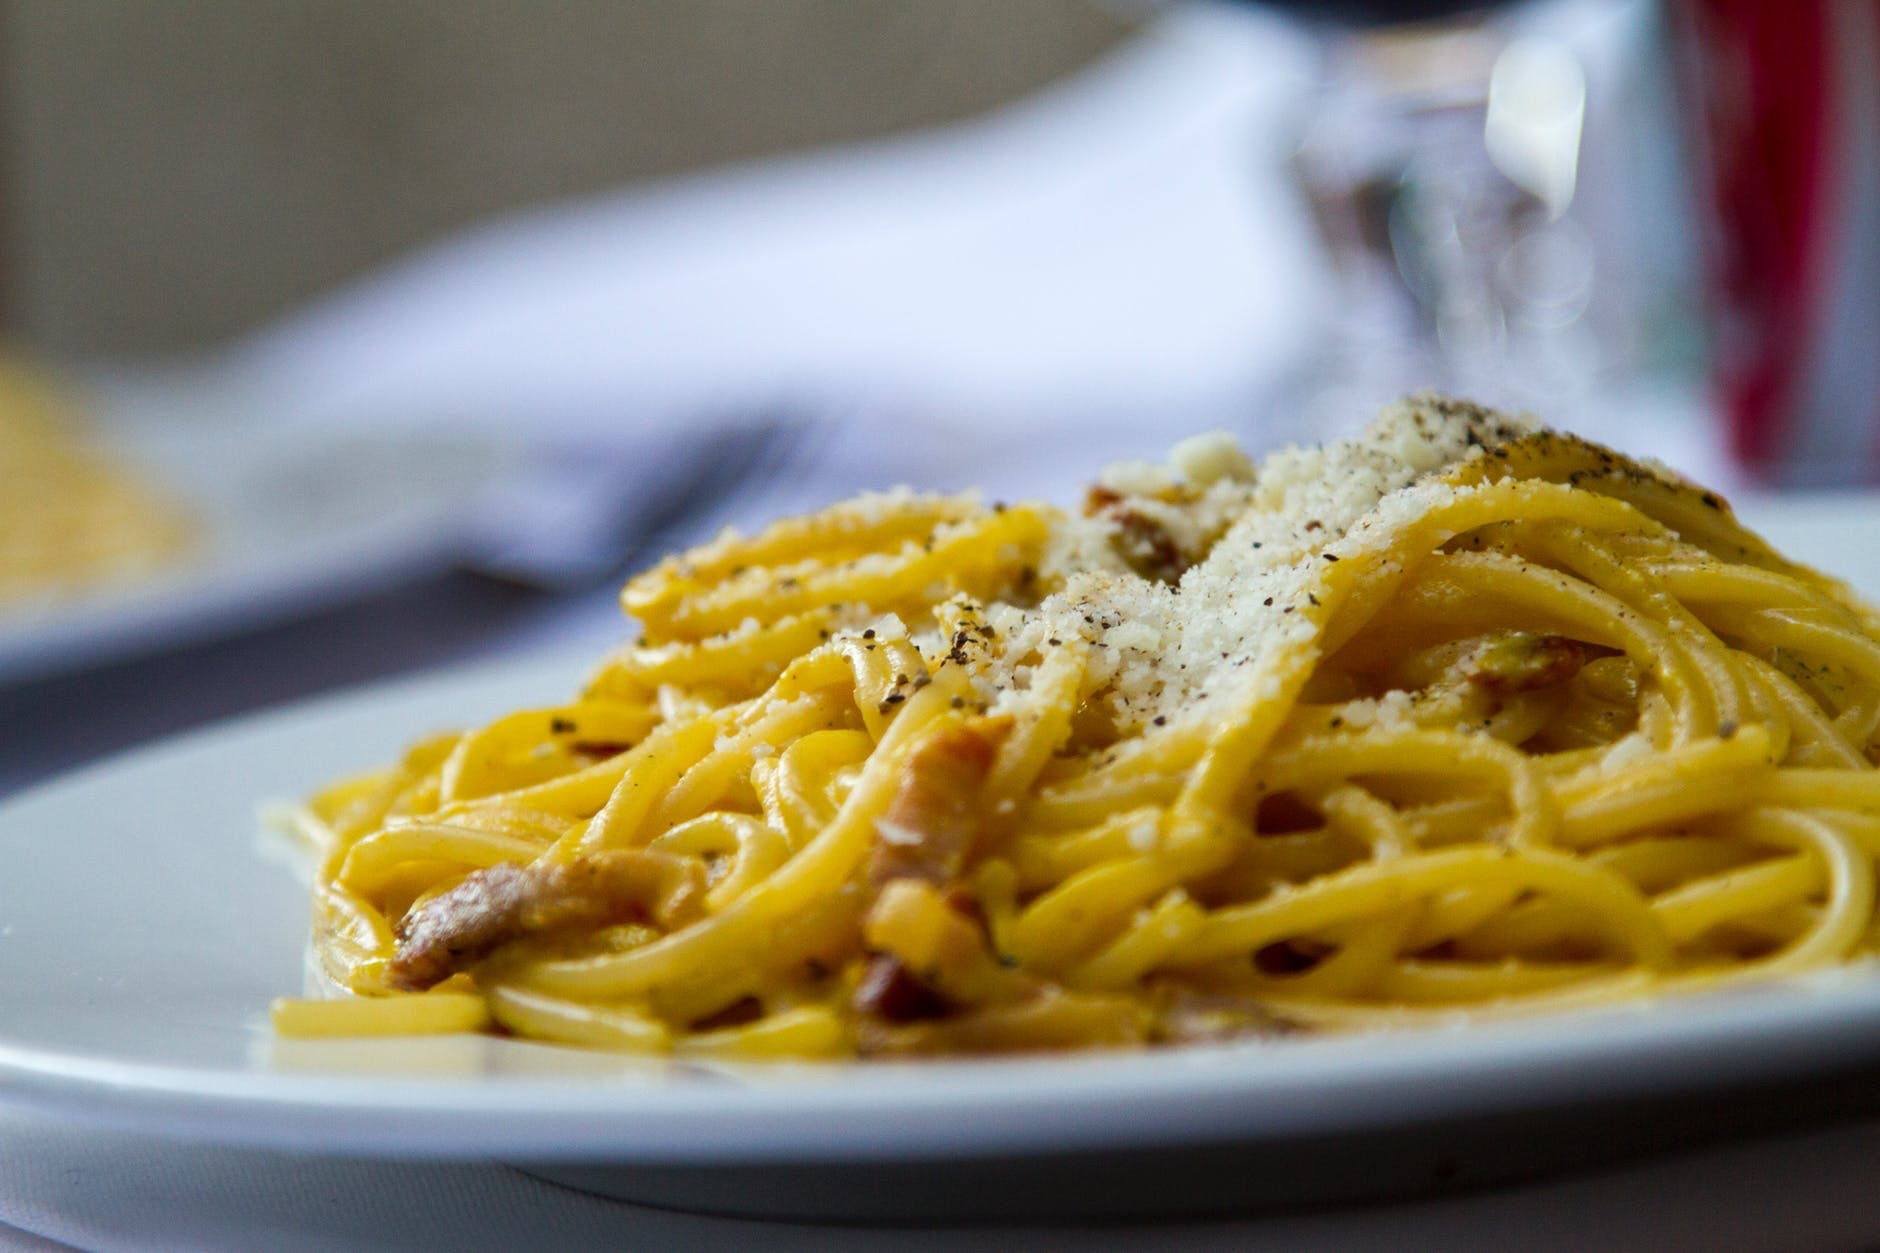 Plate of spaghetti Alfredo with Parmesan sprinkled on top